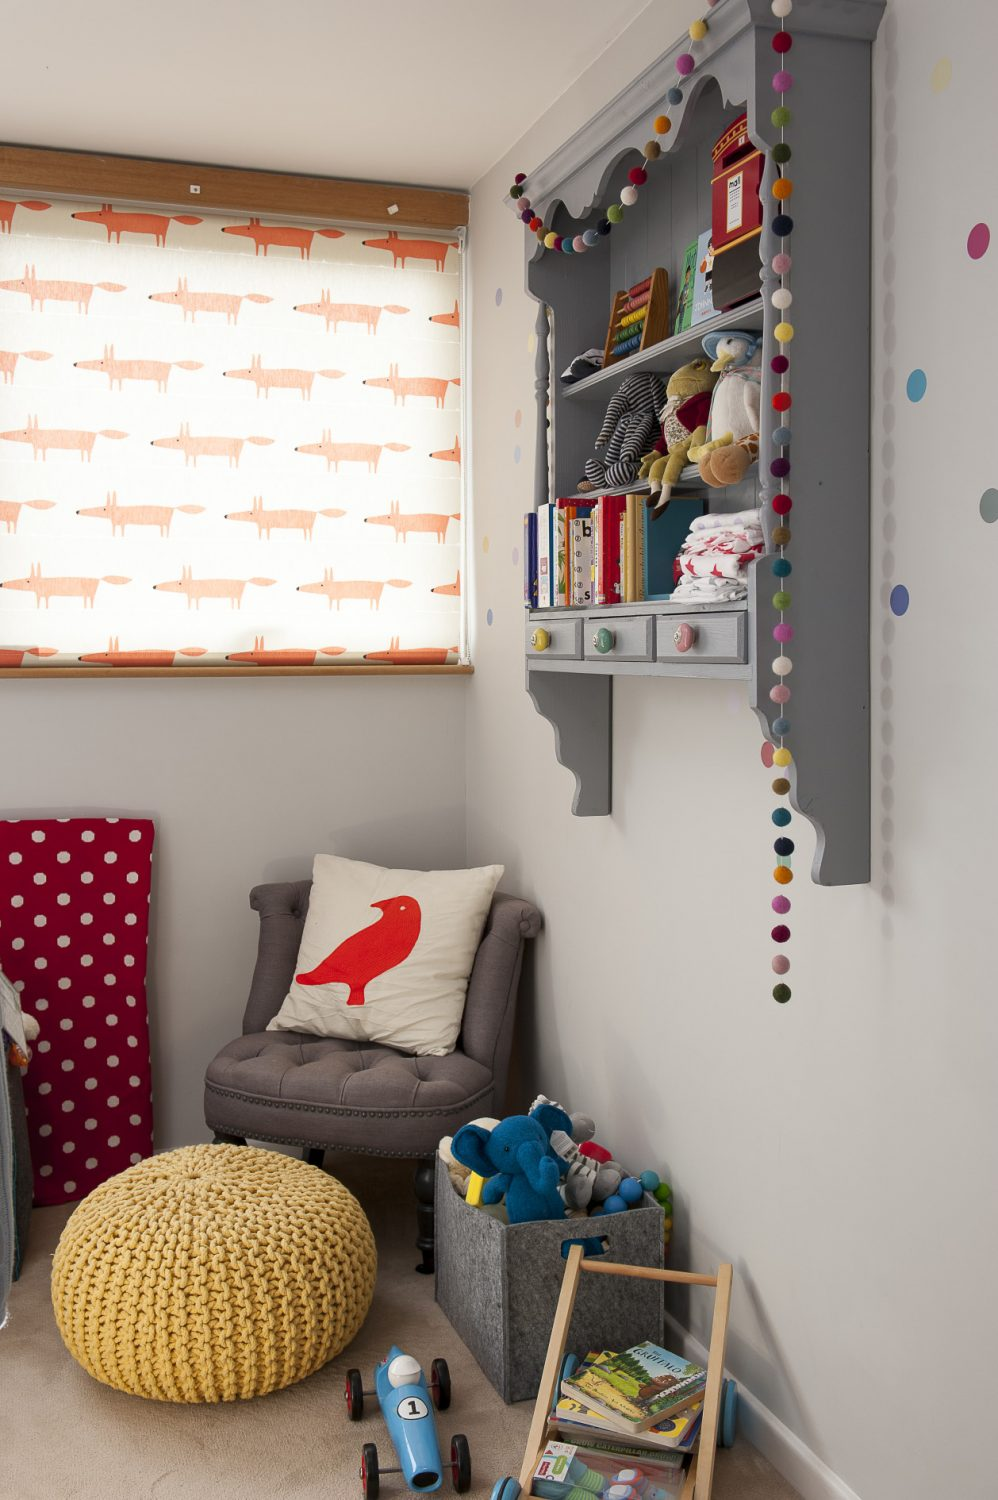 Newborn Max's room is yet to be occupied. The muted greys of the walls and furniture contrast with pops of vibrant orange from the roller blind in 'Mr Fox' fabric by Scion